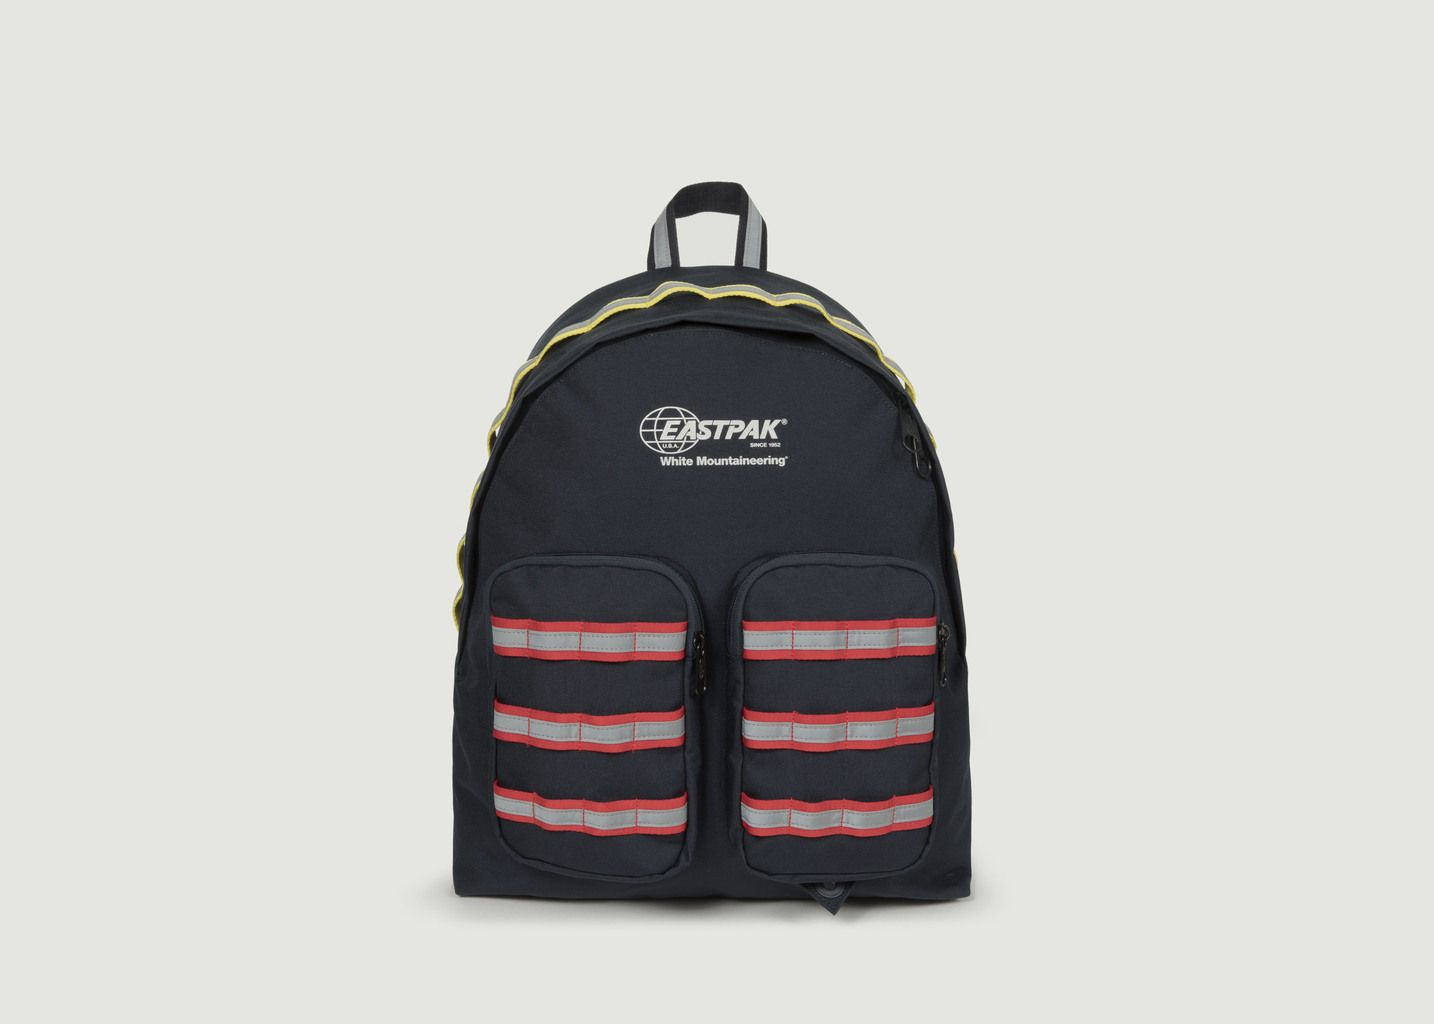 Sac à Dos Doubl'R x White Mountaineering - Eastpak